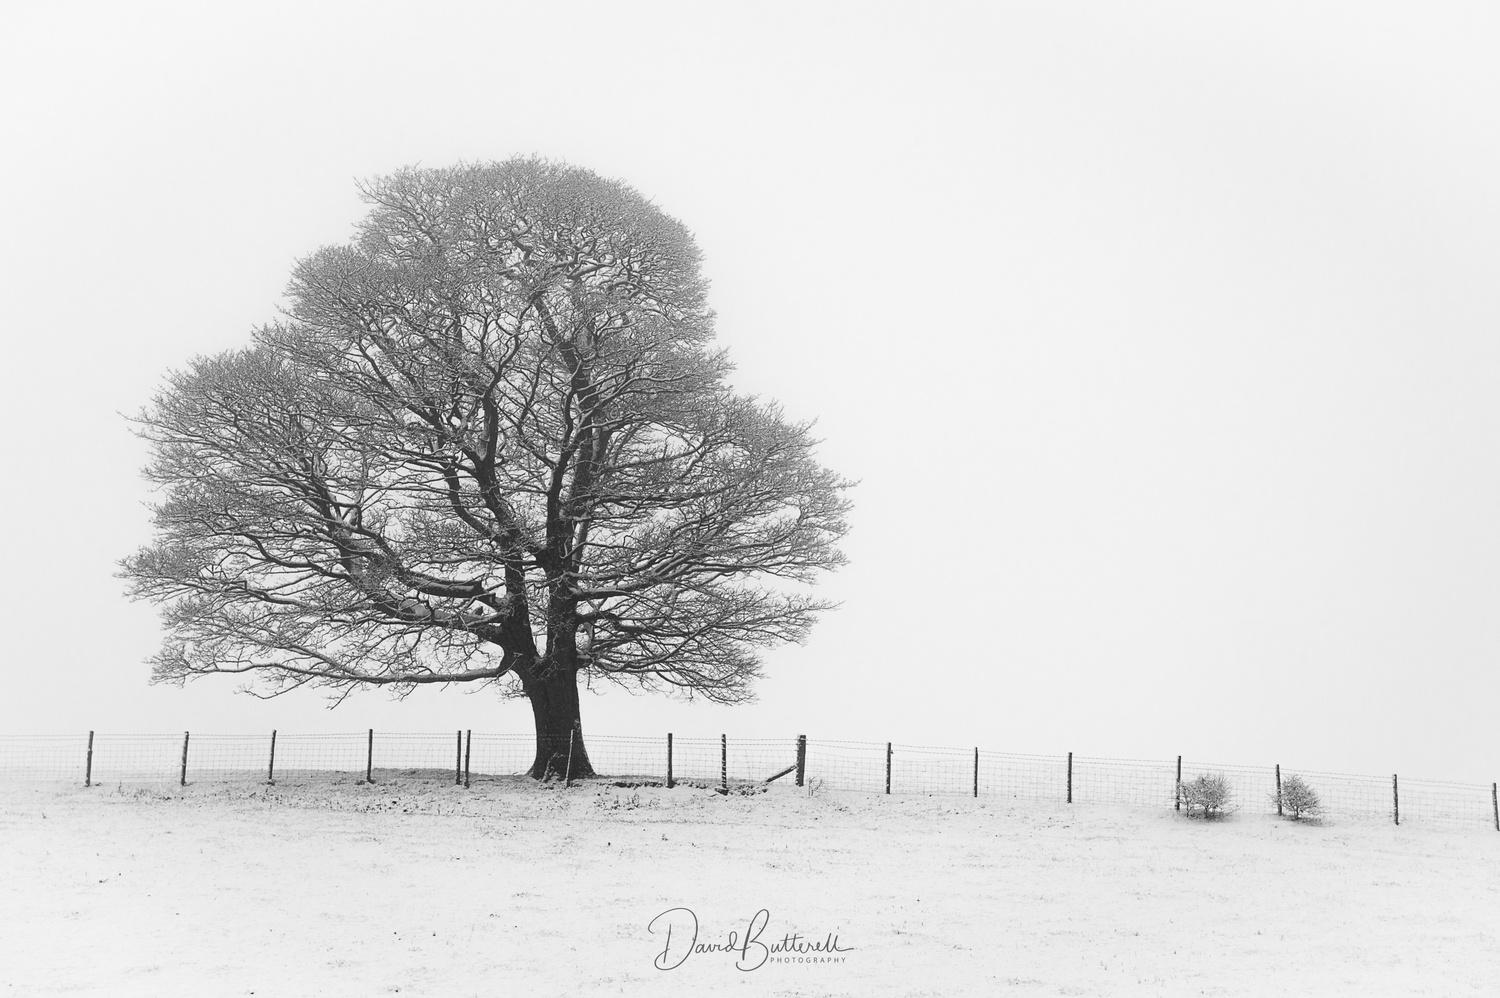 Snow Tree by David Butterell